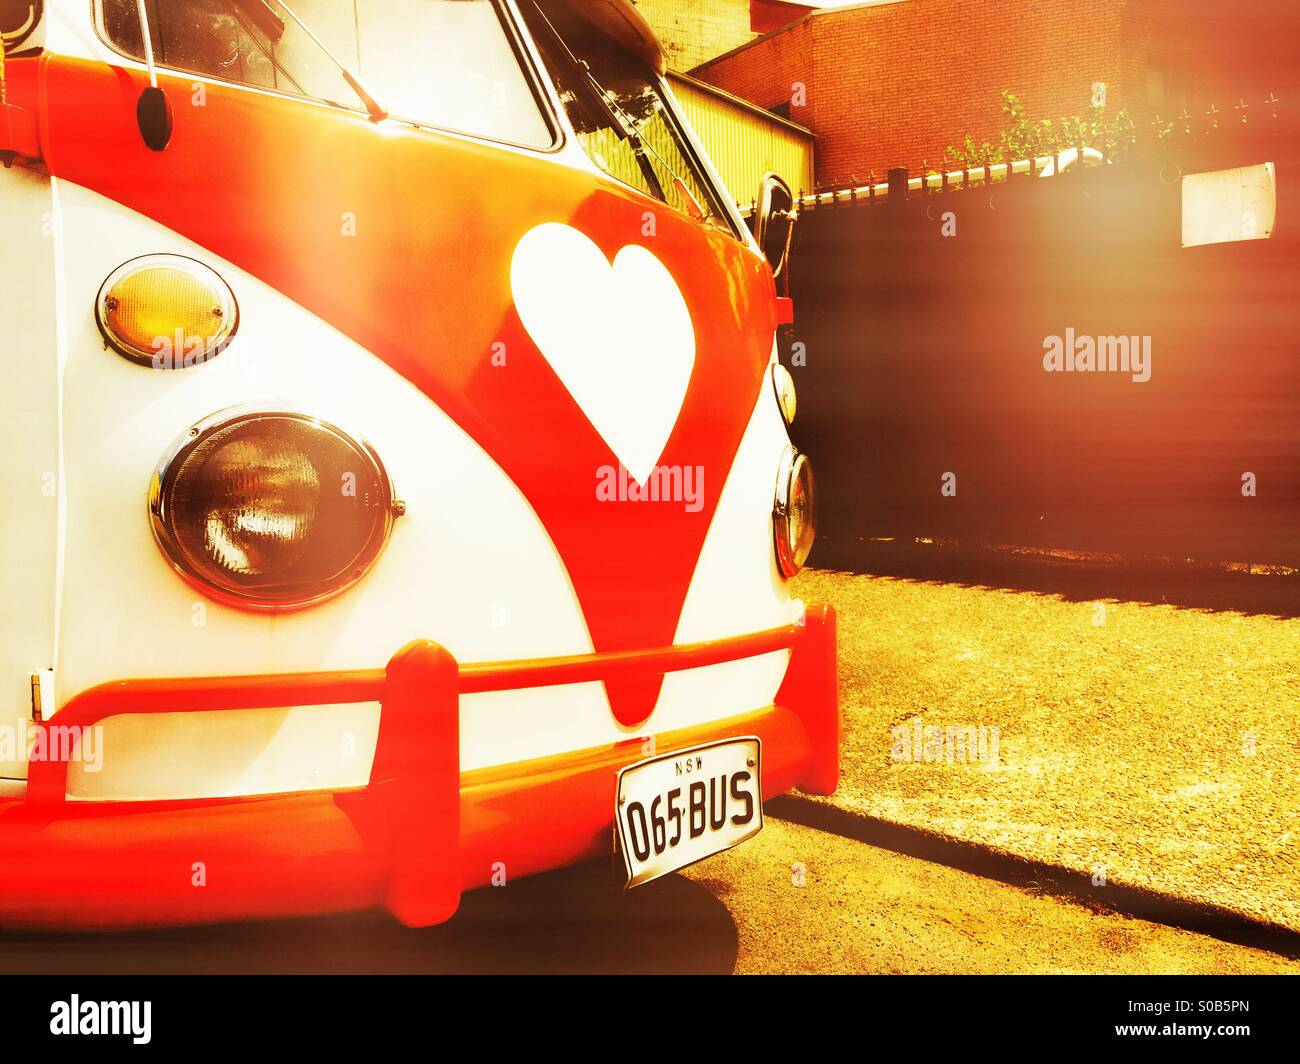 An old VW bus with a heart logo on the front - Stock Image